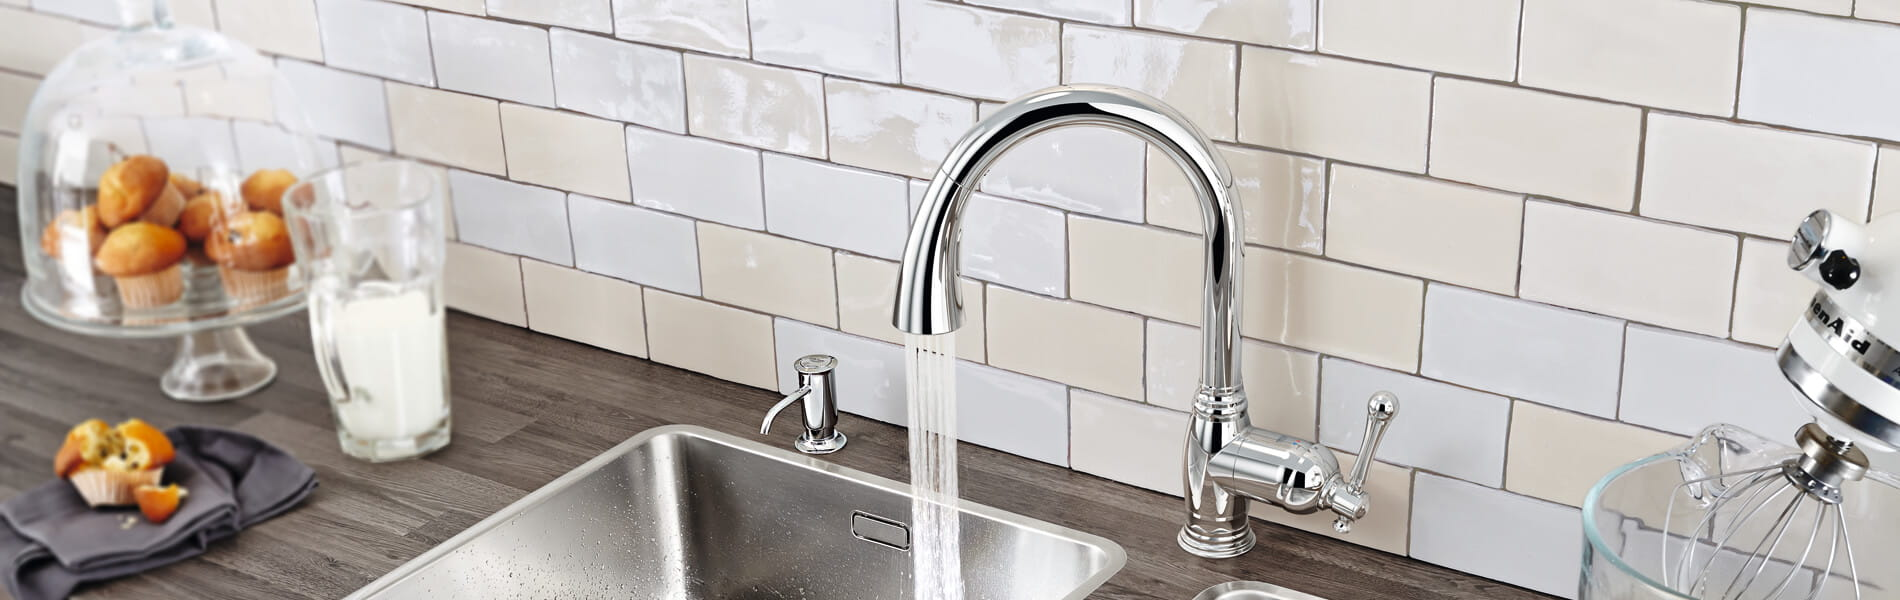 GROHE Bridgeford Kitchen Faucet